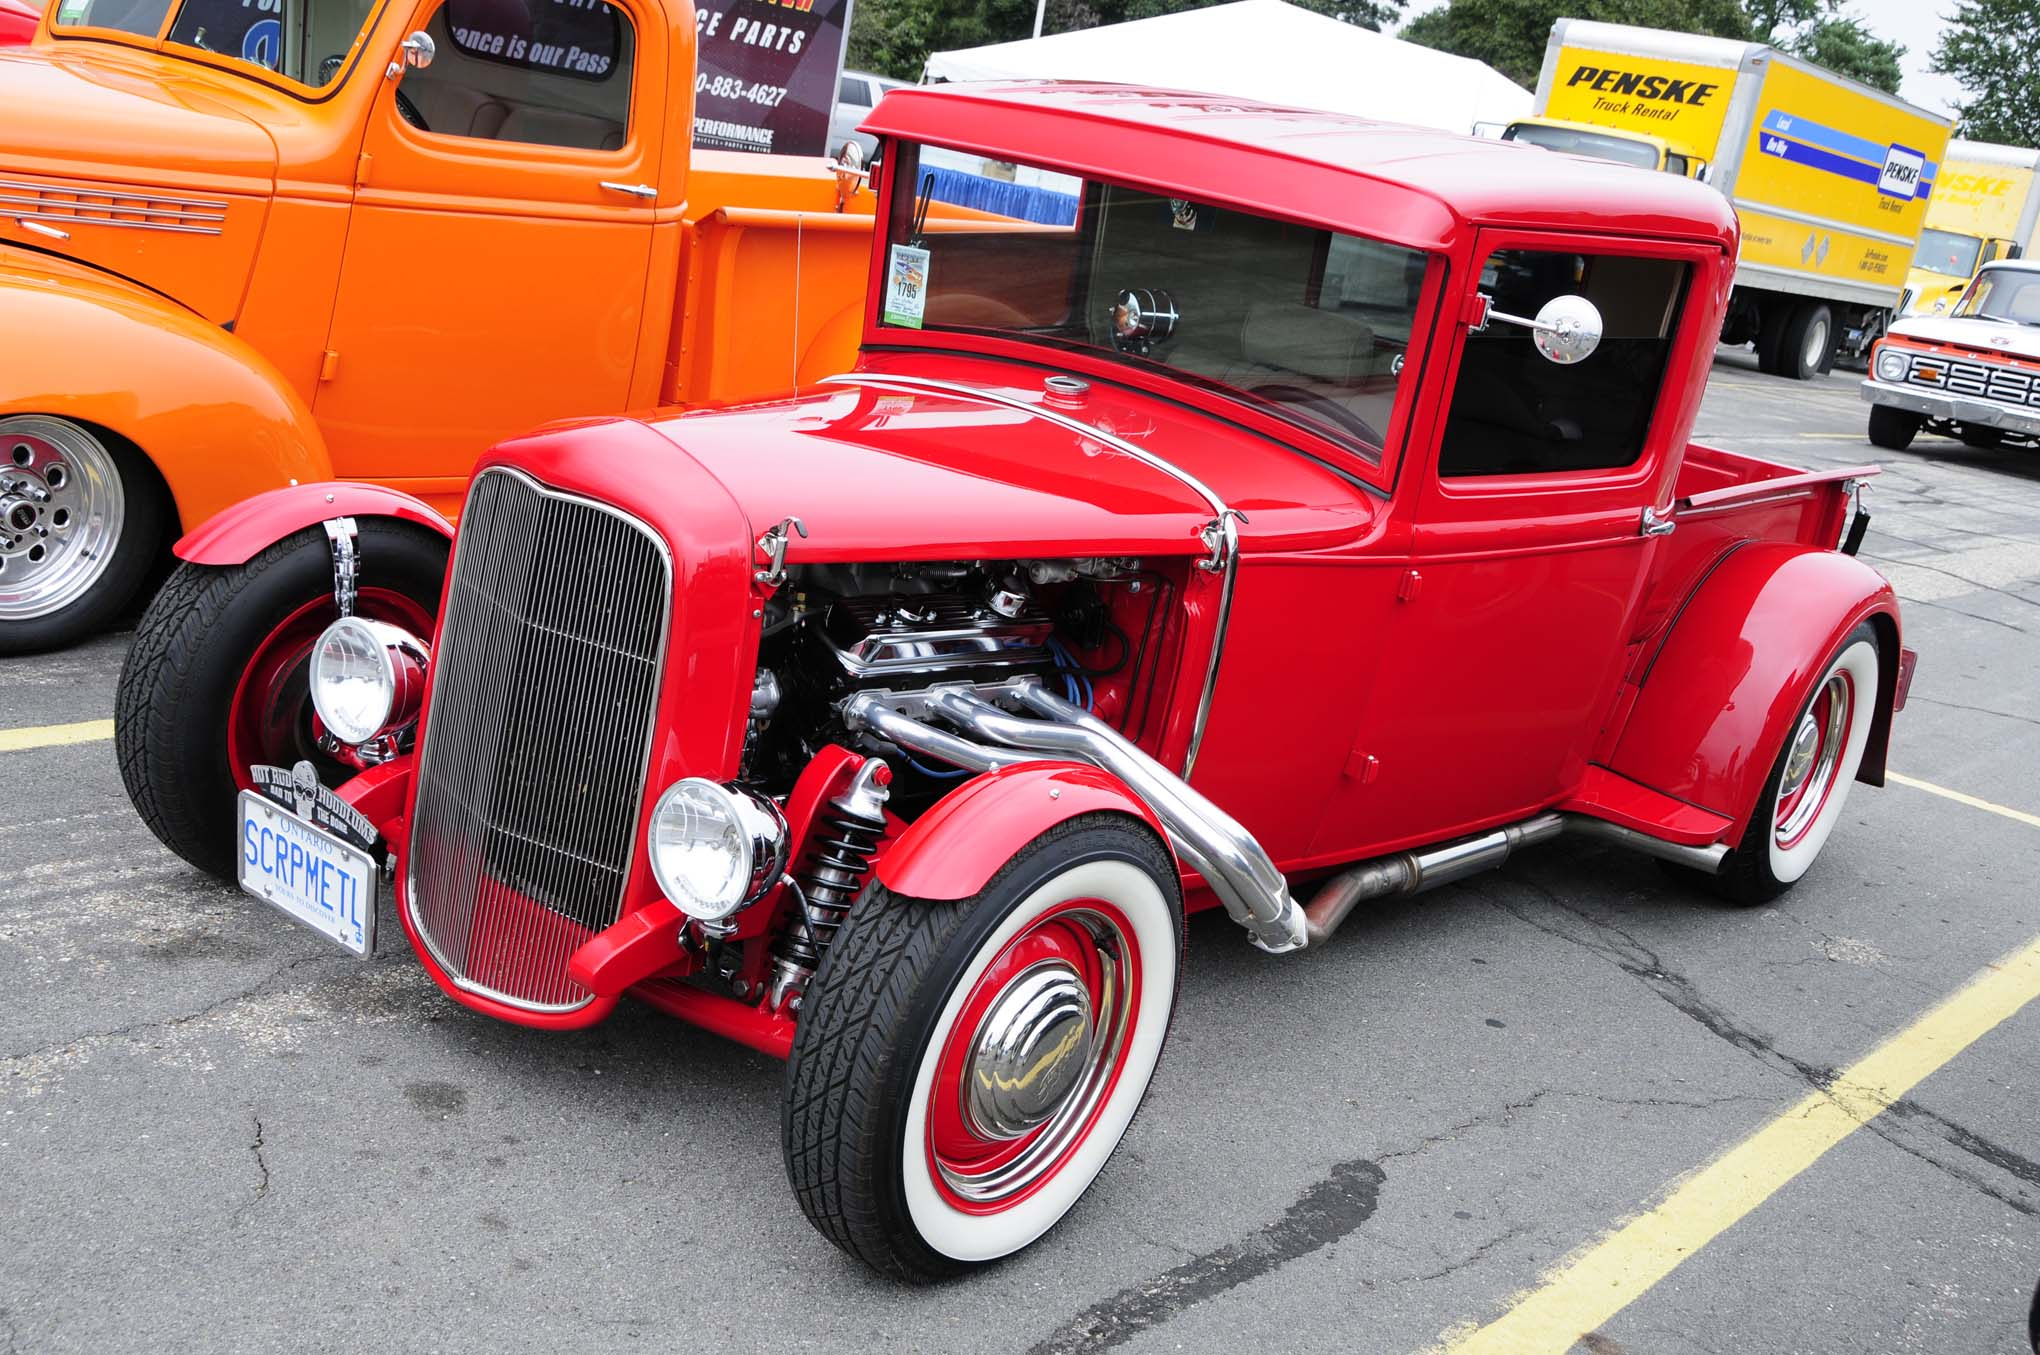 Don Wilson's low-slung 1930 Ford pickup had tons of style with its channeled body, bobbed rear fenders, Deuce grille, and small-block power.